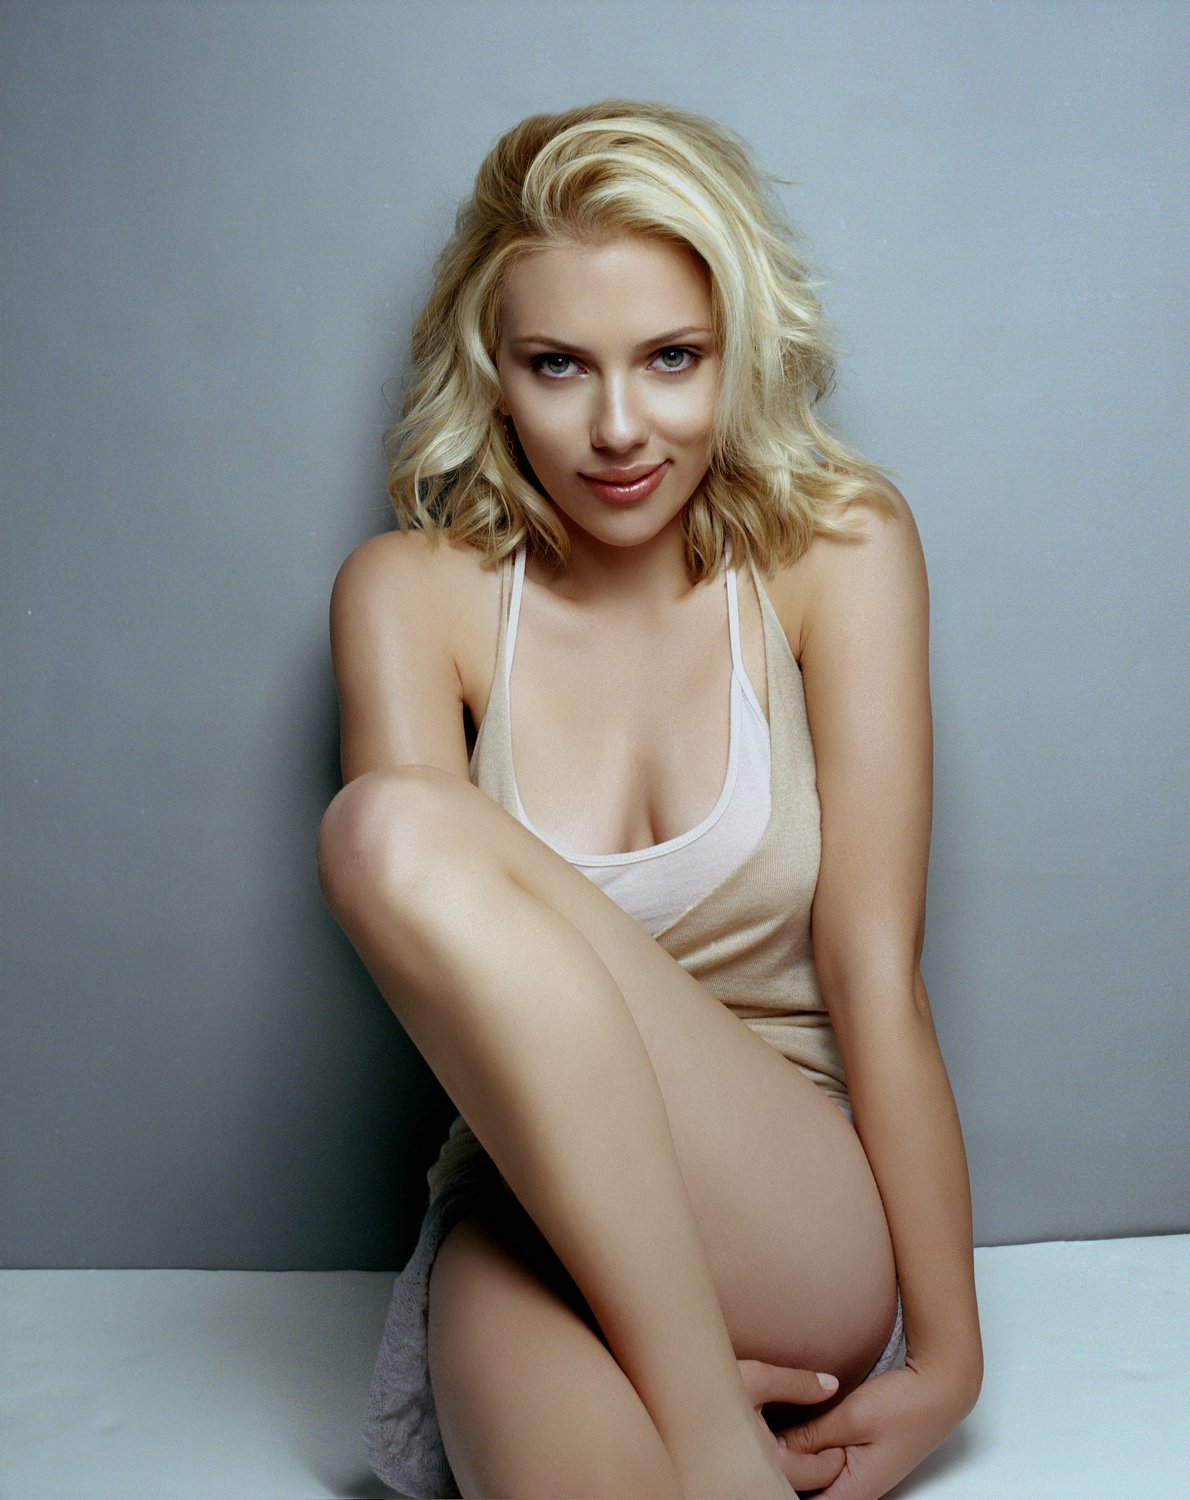 scarlett johansson model - photo #13